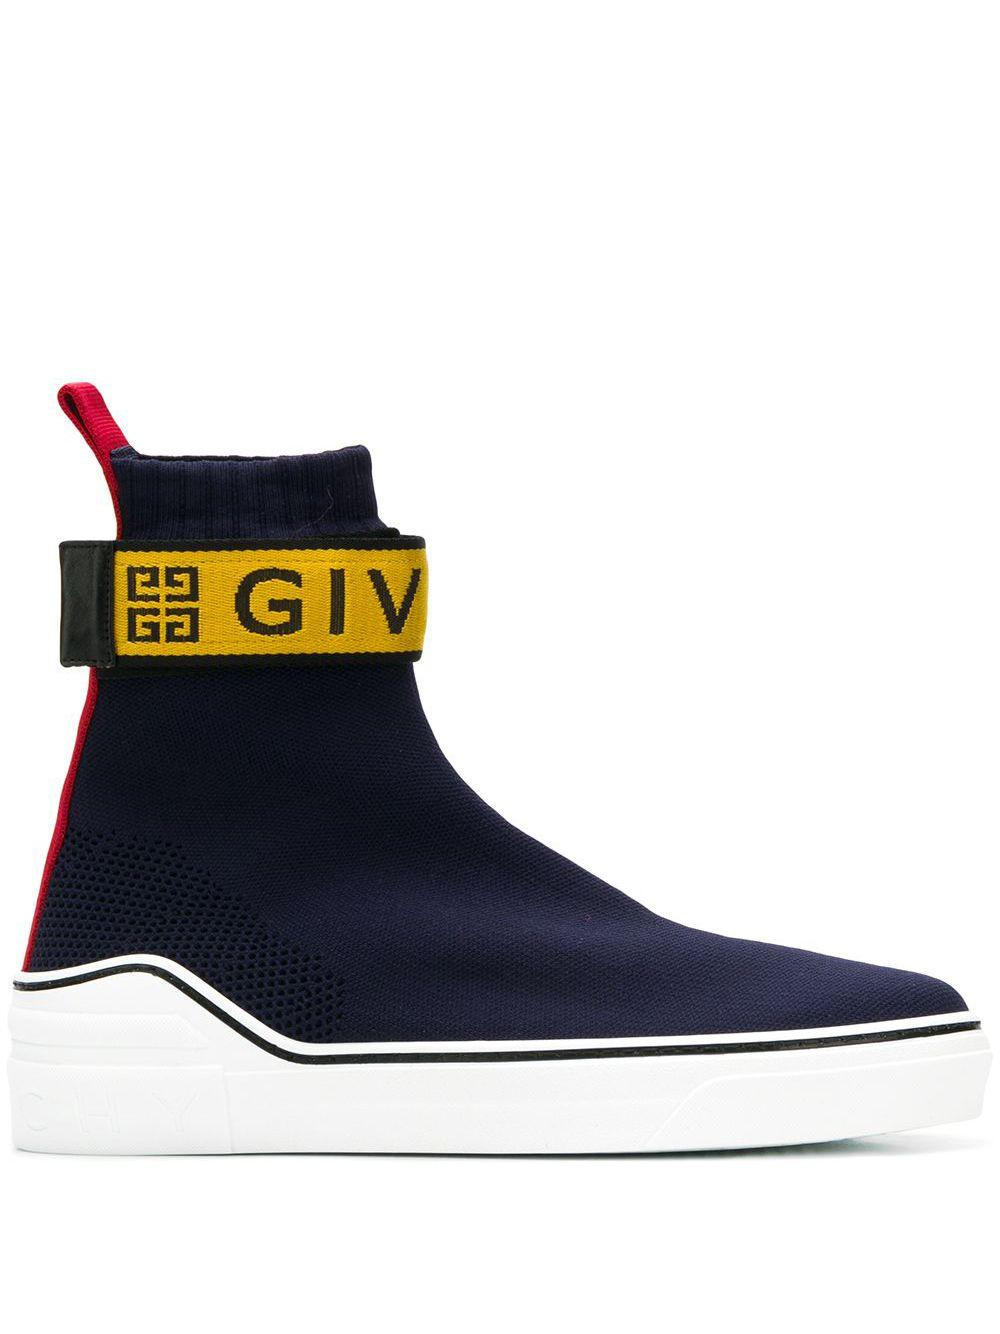 Givenchy Synthetic George V Knit